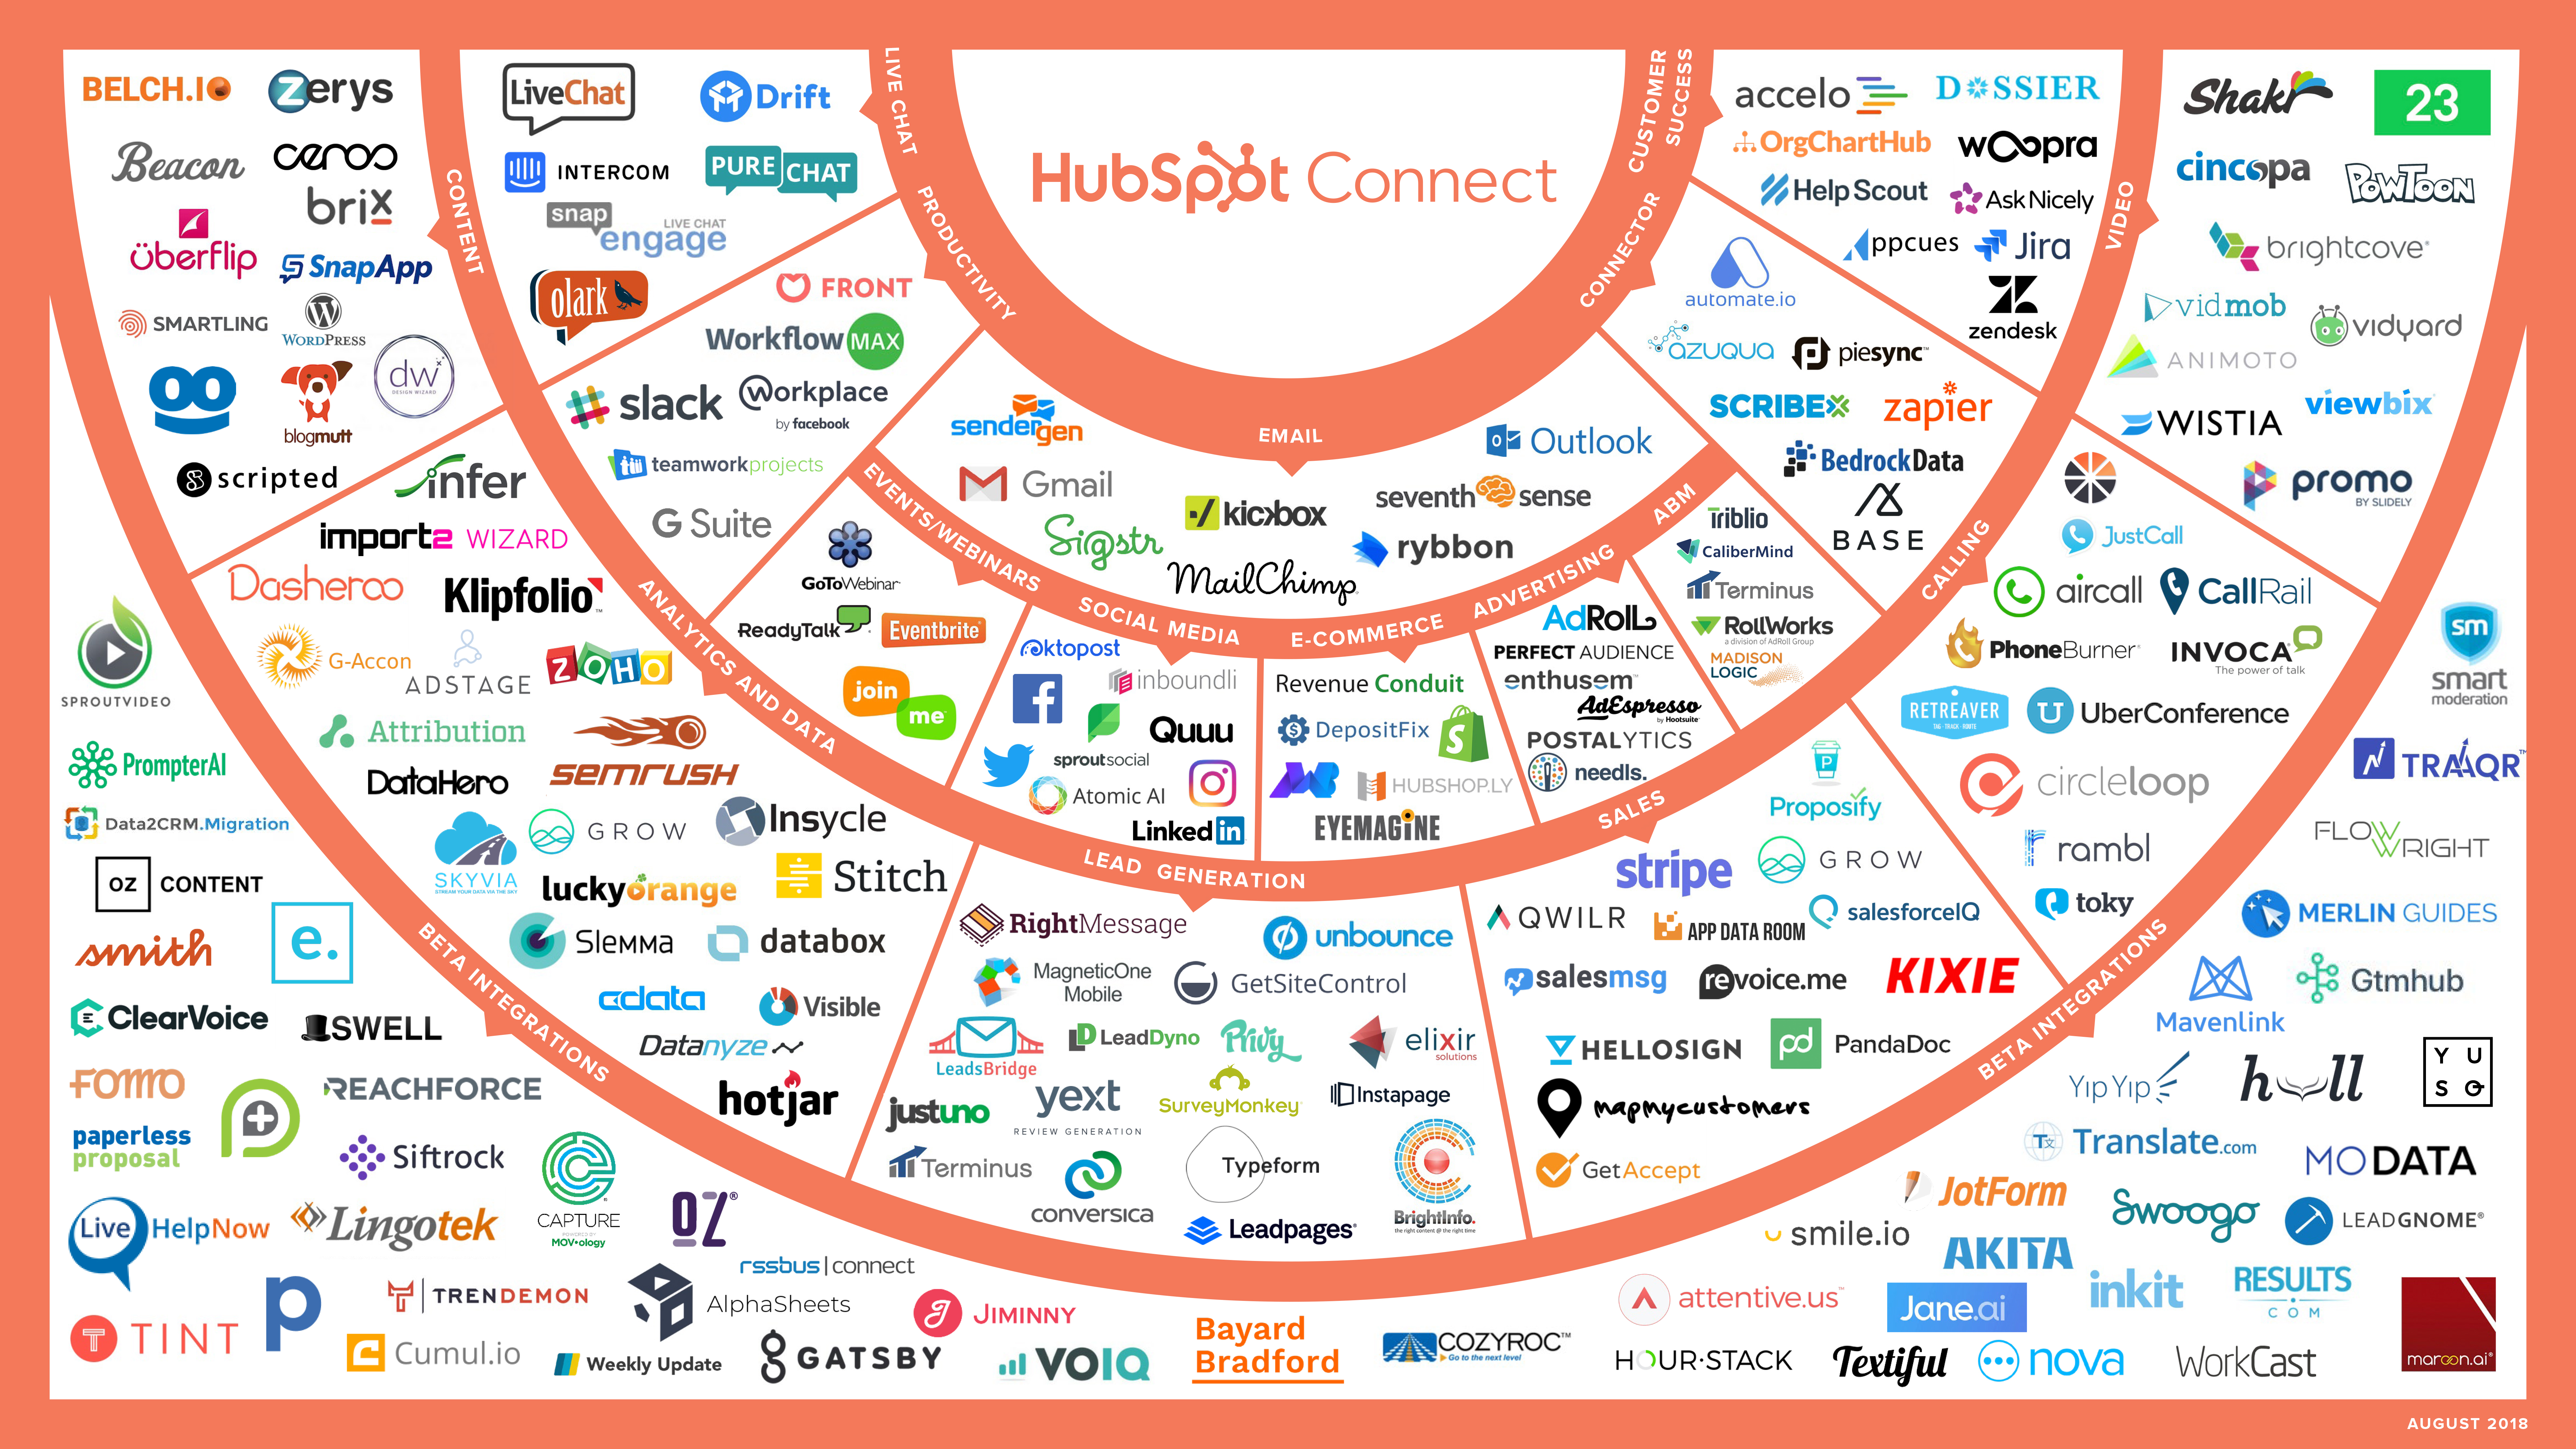 January 2019: New HubSpot Product Integrations This Month